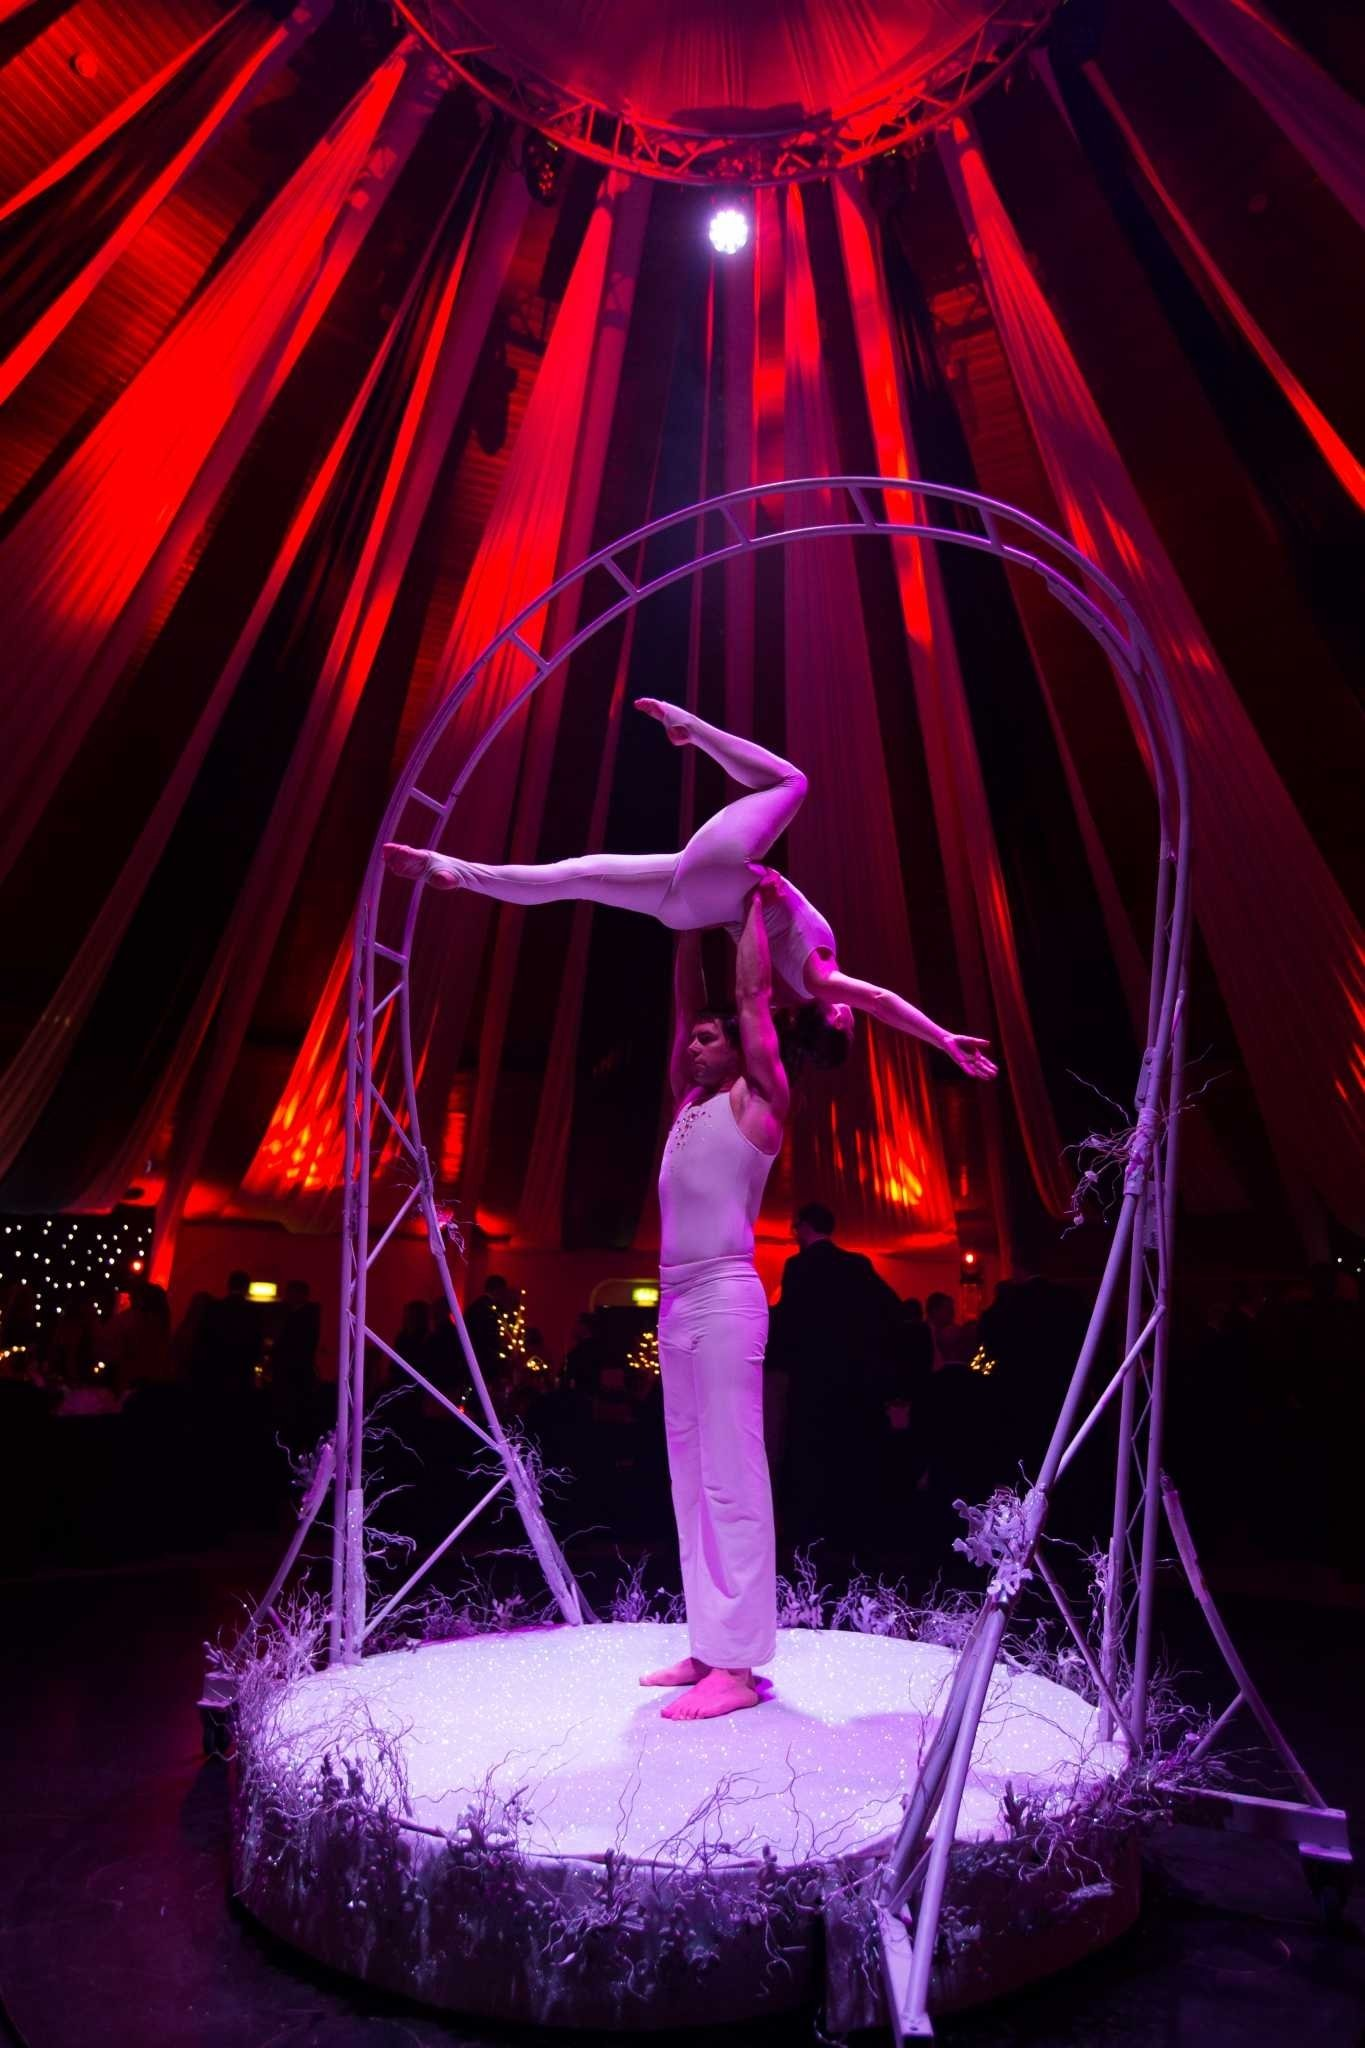 10 Most Recommended Entertainment Ideas For Corporate Events 6 unique wedding entertainment ideas for your big day sternberg clarke 2020